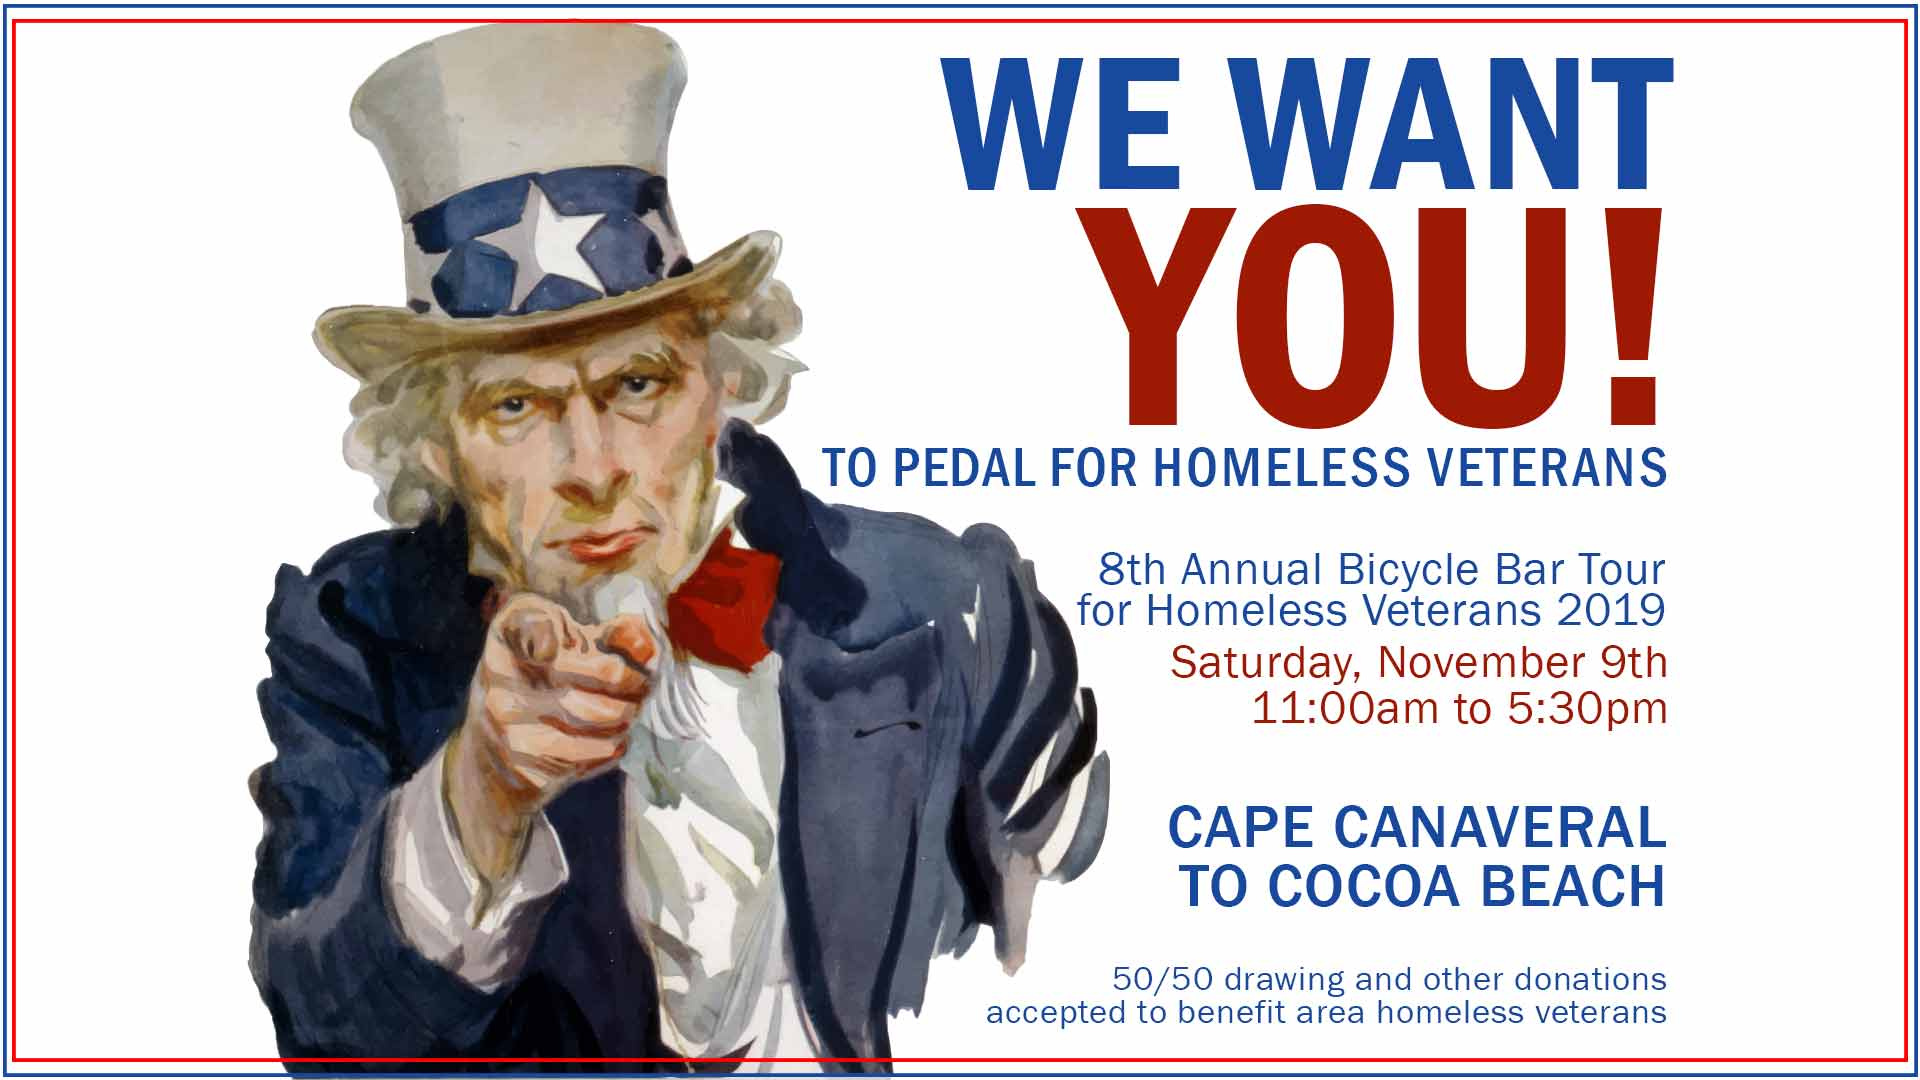 2019 Bicycle Bar Tour for Homeless Veterans